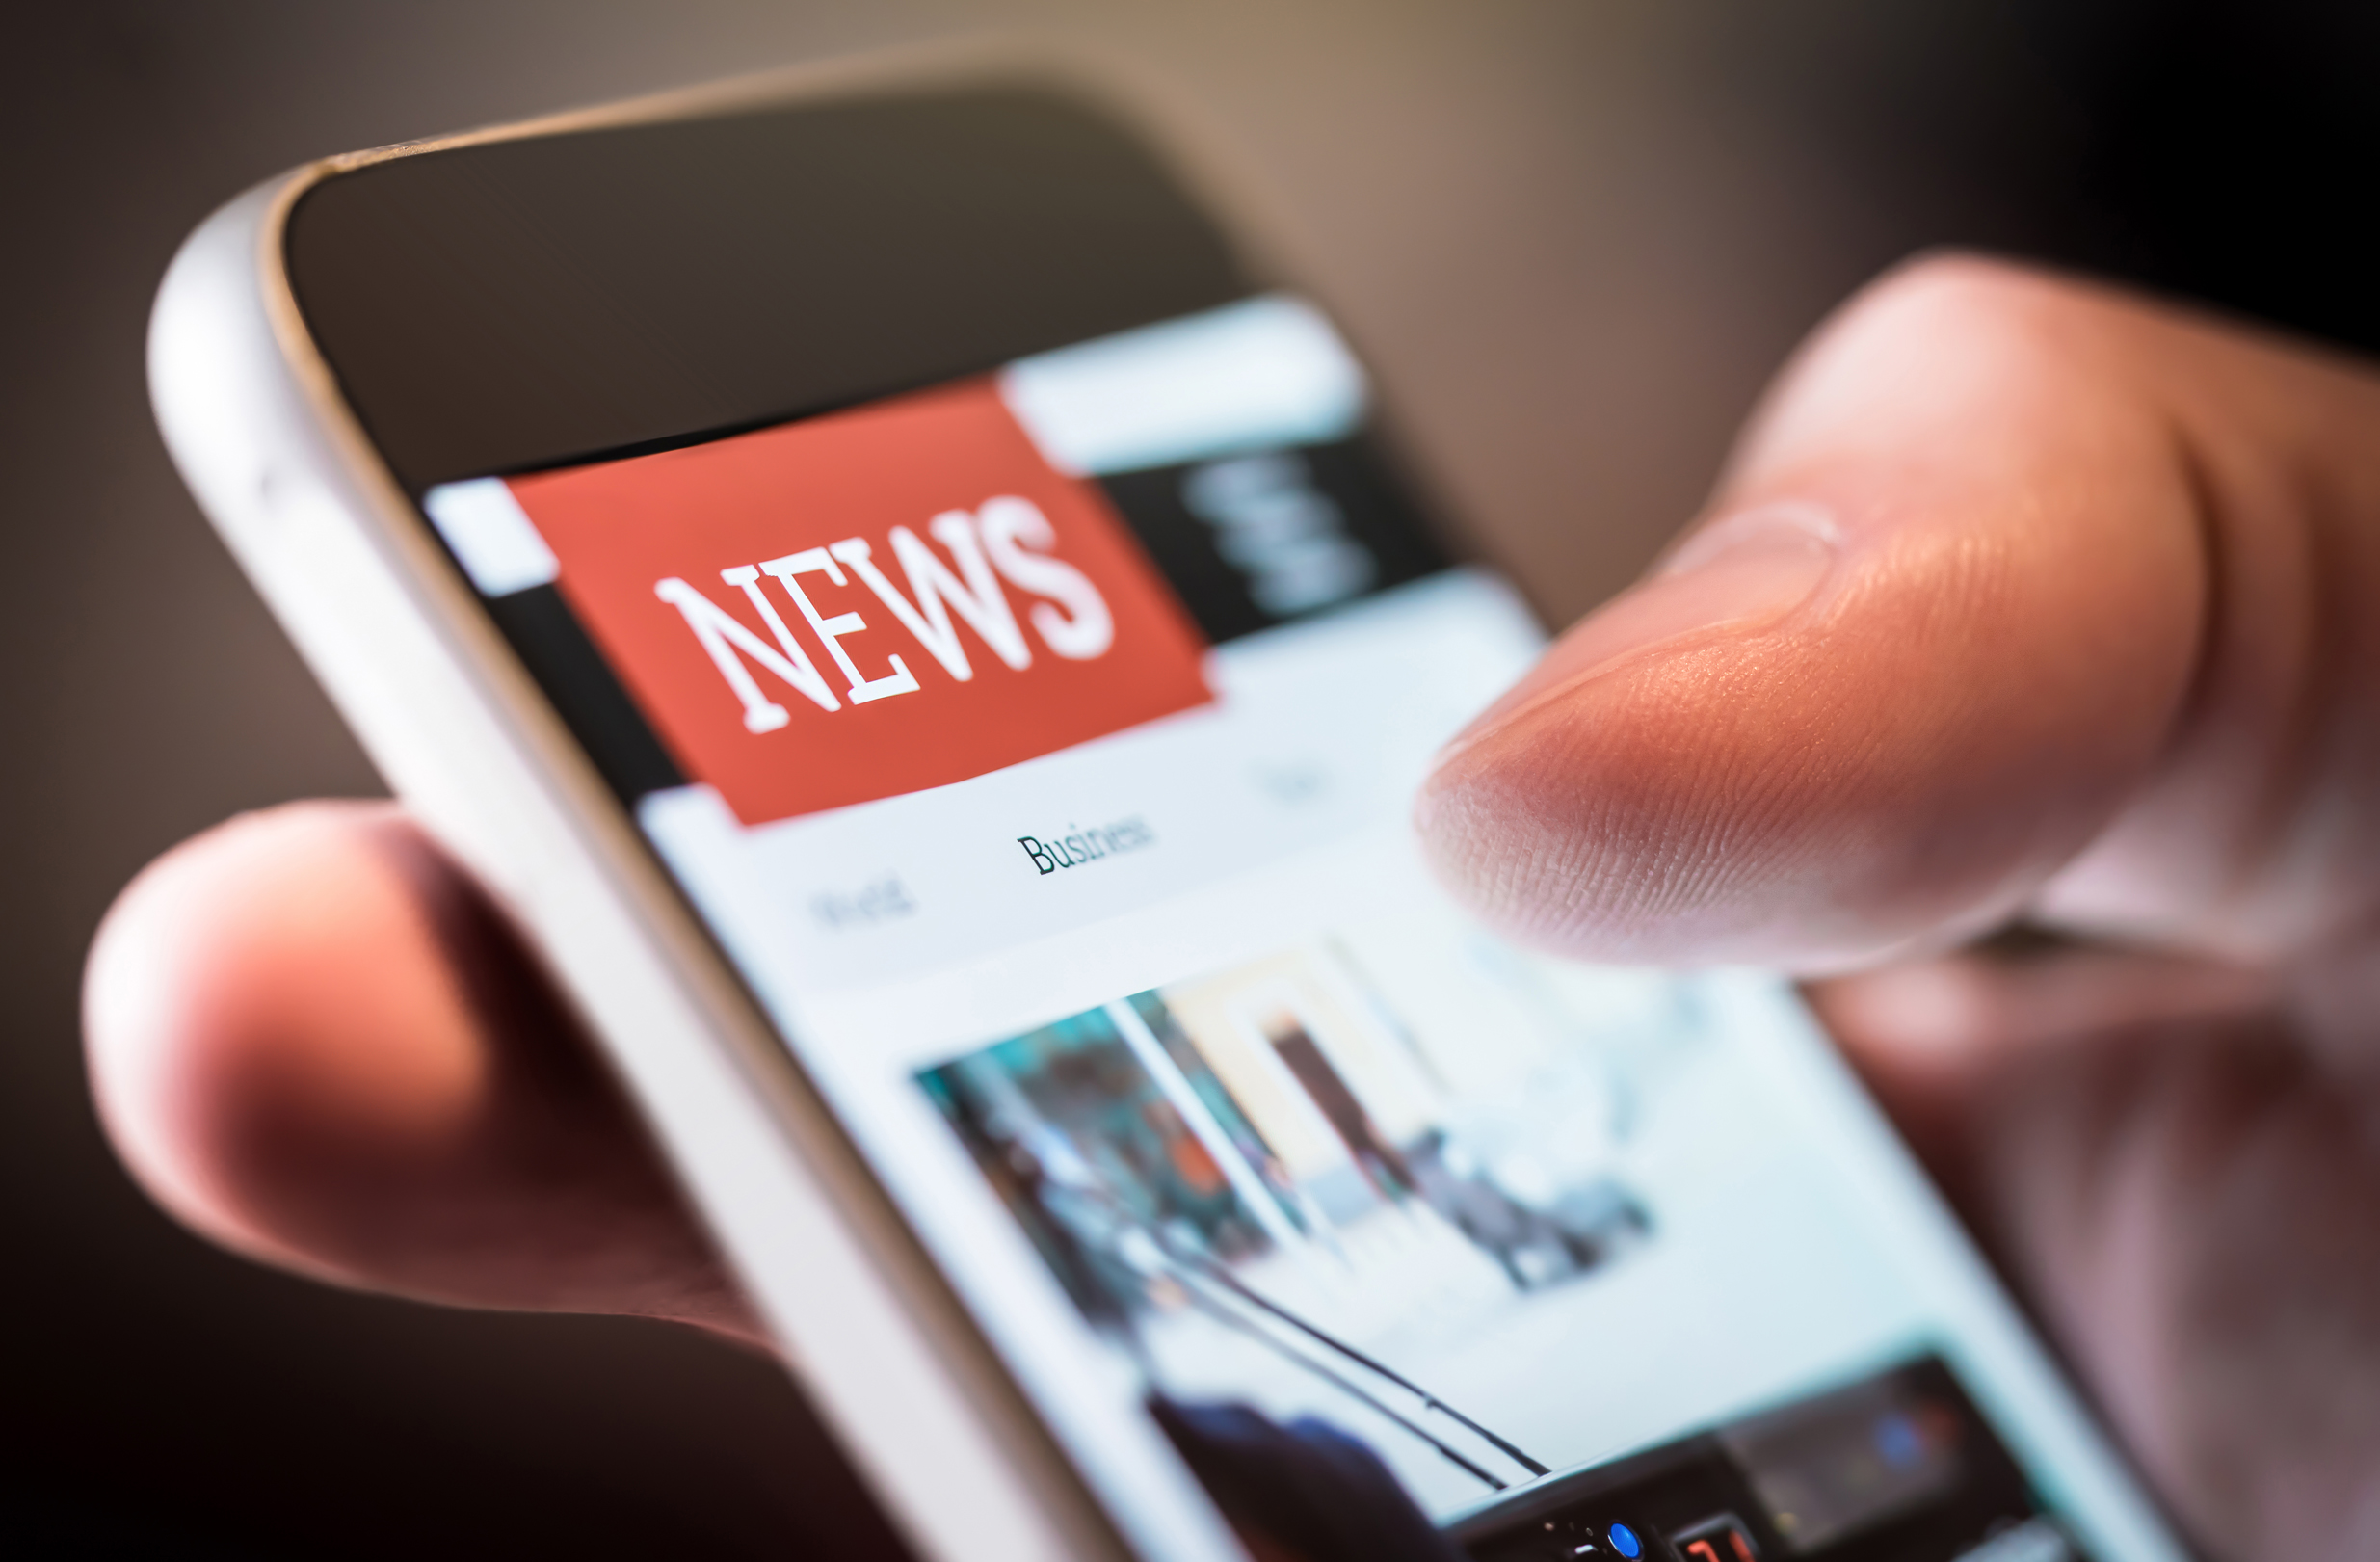 Image of a news on a smartphone. Image credit: iStock